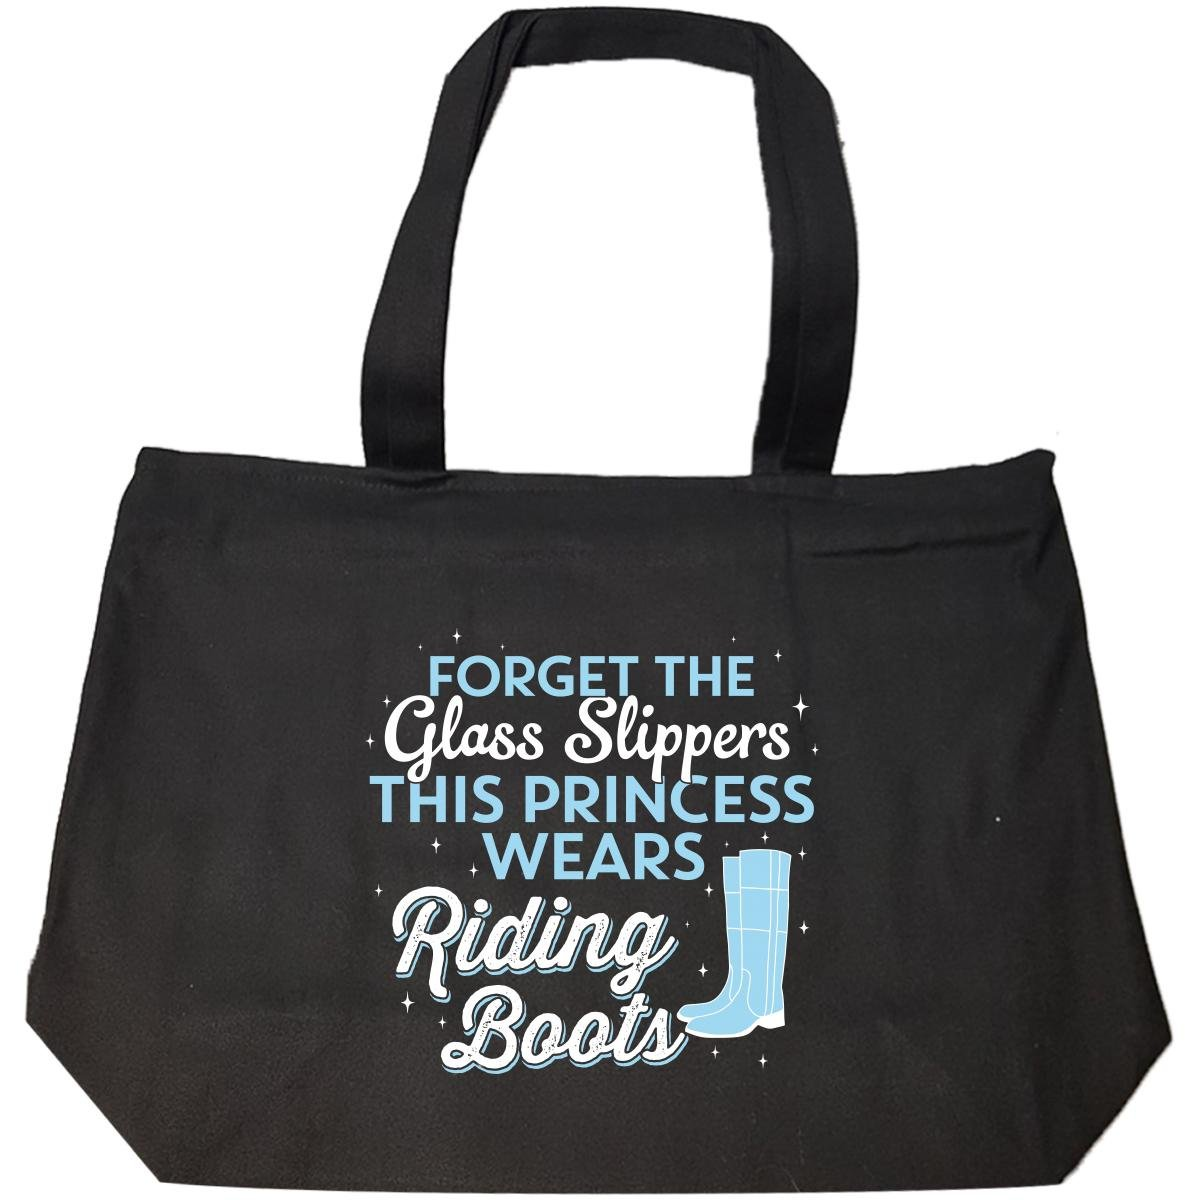 This Princess Wears Riding Boots - Tote Bag With Zip